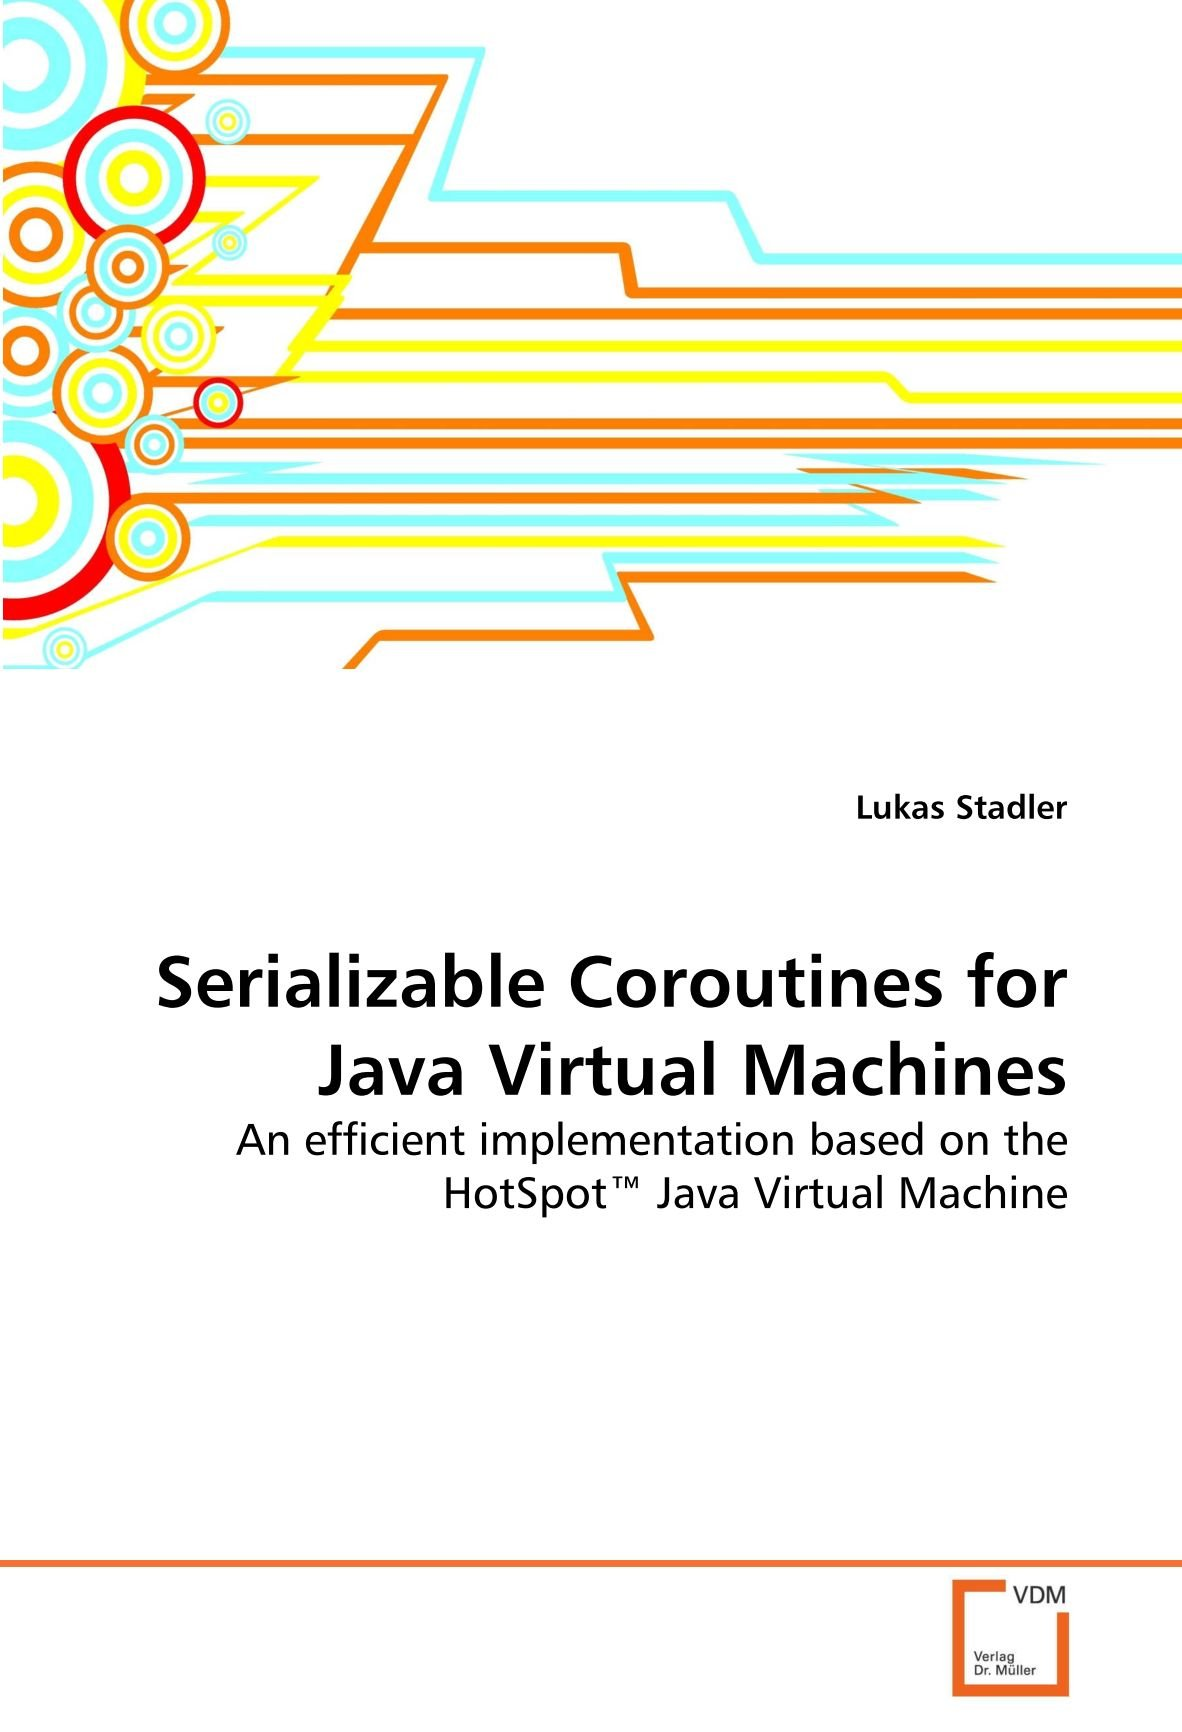 Serializable Coroutines for Java Virtual Machines: An